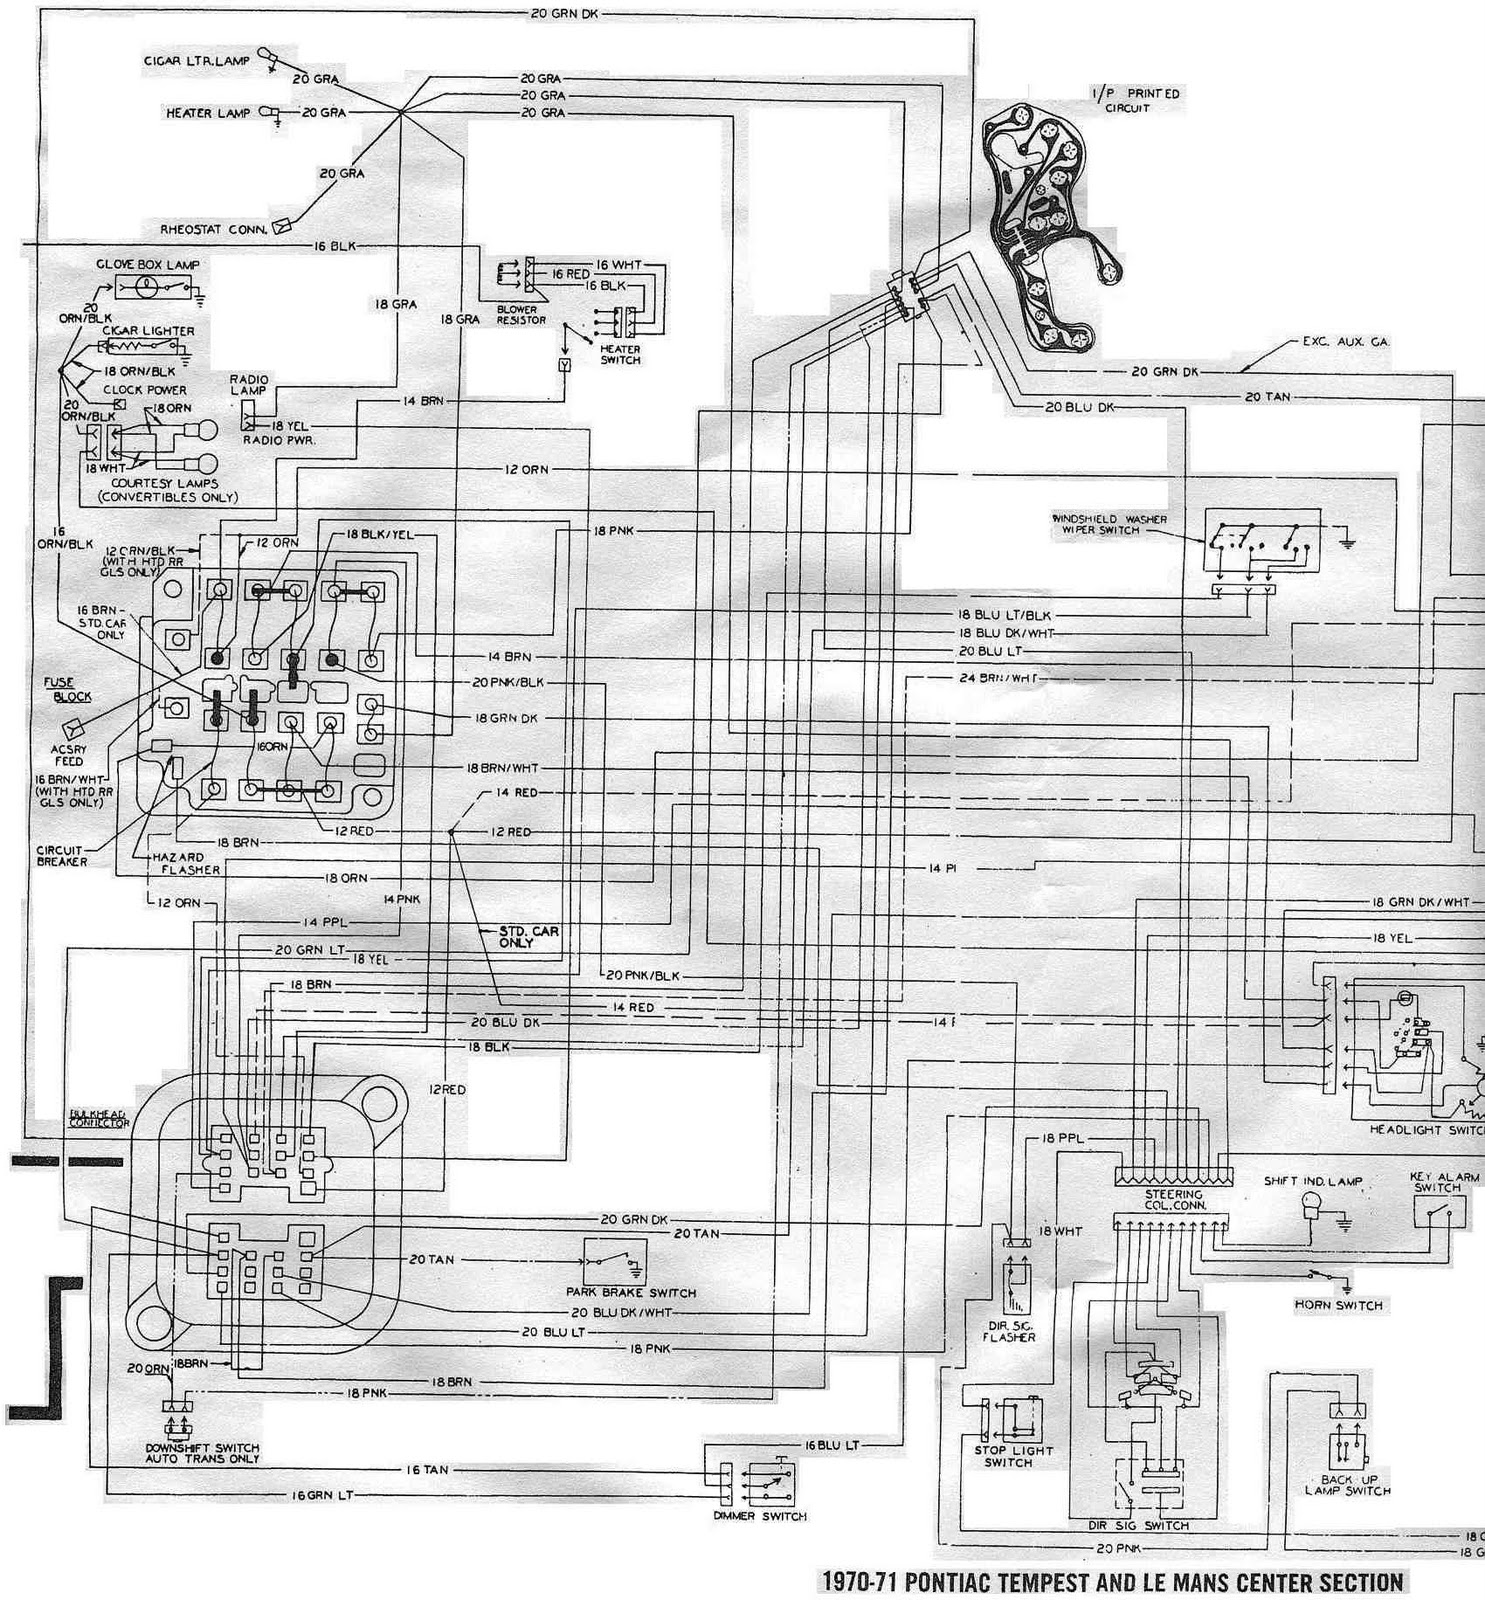 1968 Dodge Coro Wiring Diagram Improve Schematic Explained Diagrams Rh Dmdelectro Co